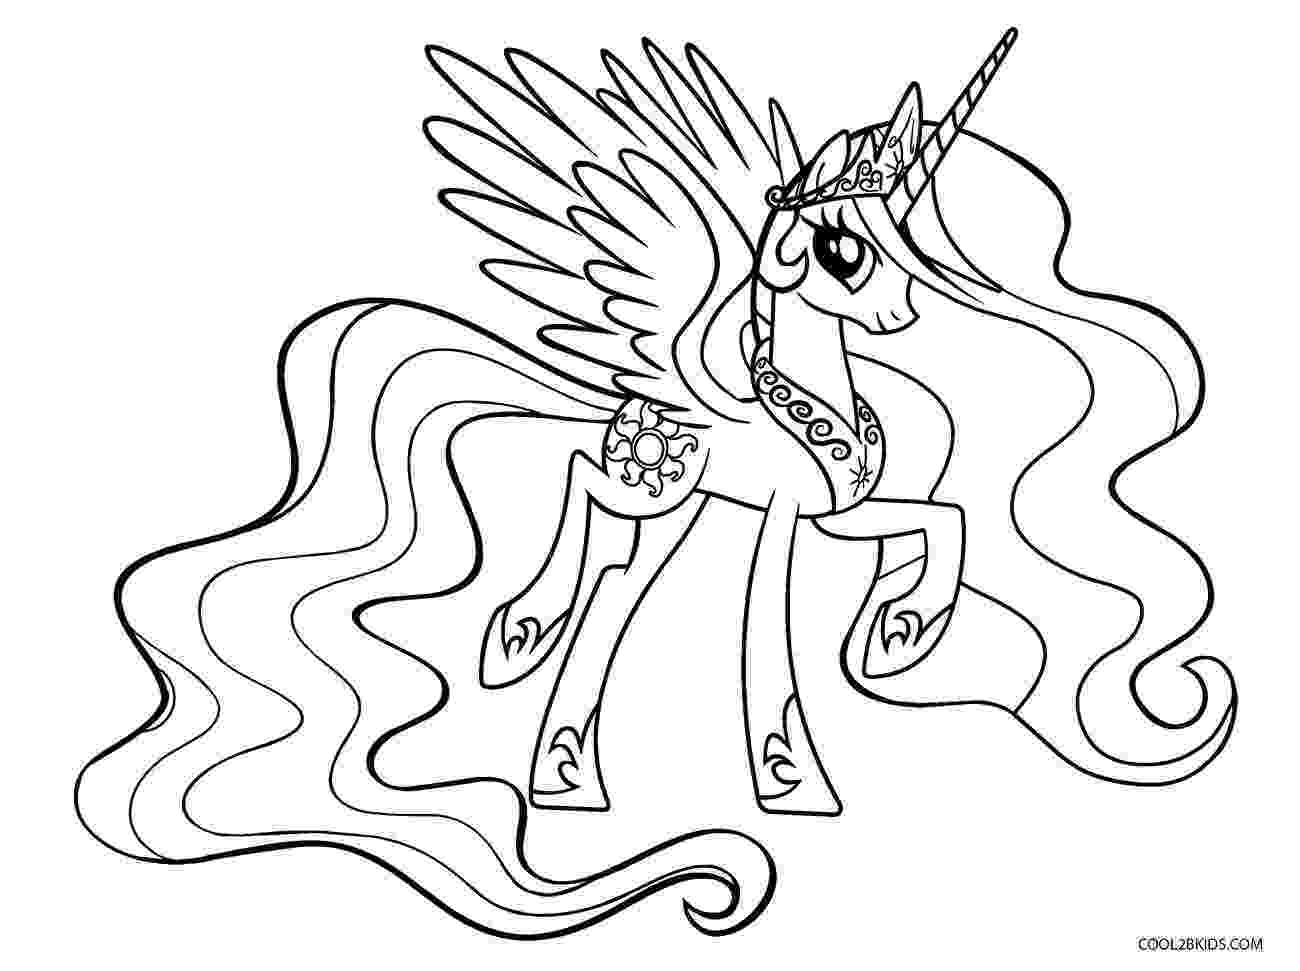 coloring pages little pony pony cartoon my little pony coloring page 003 unicorn pony pages coloring little